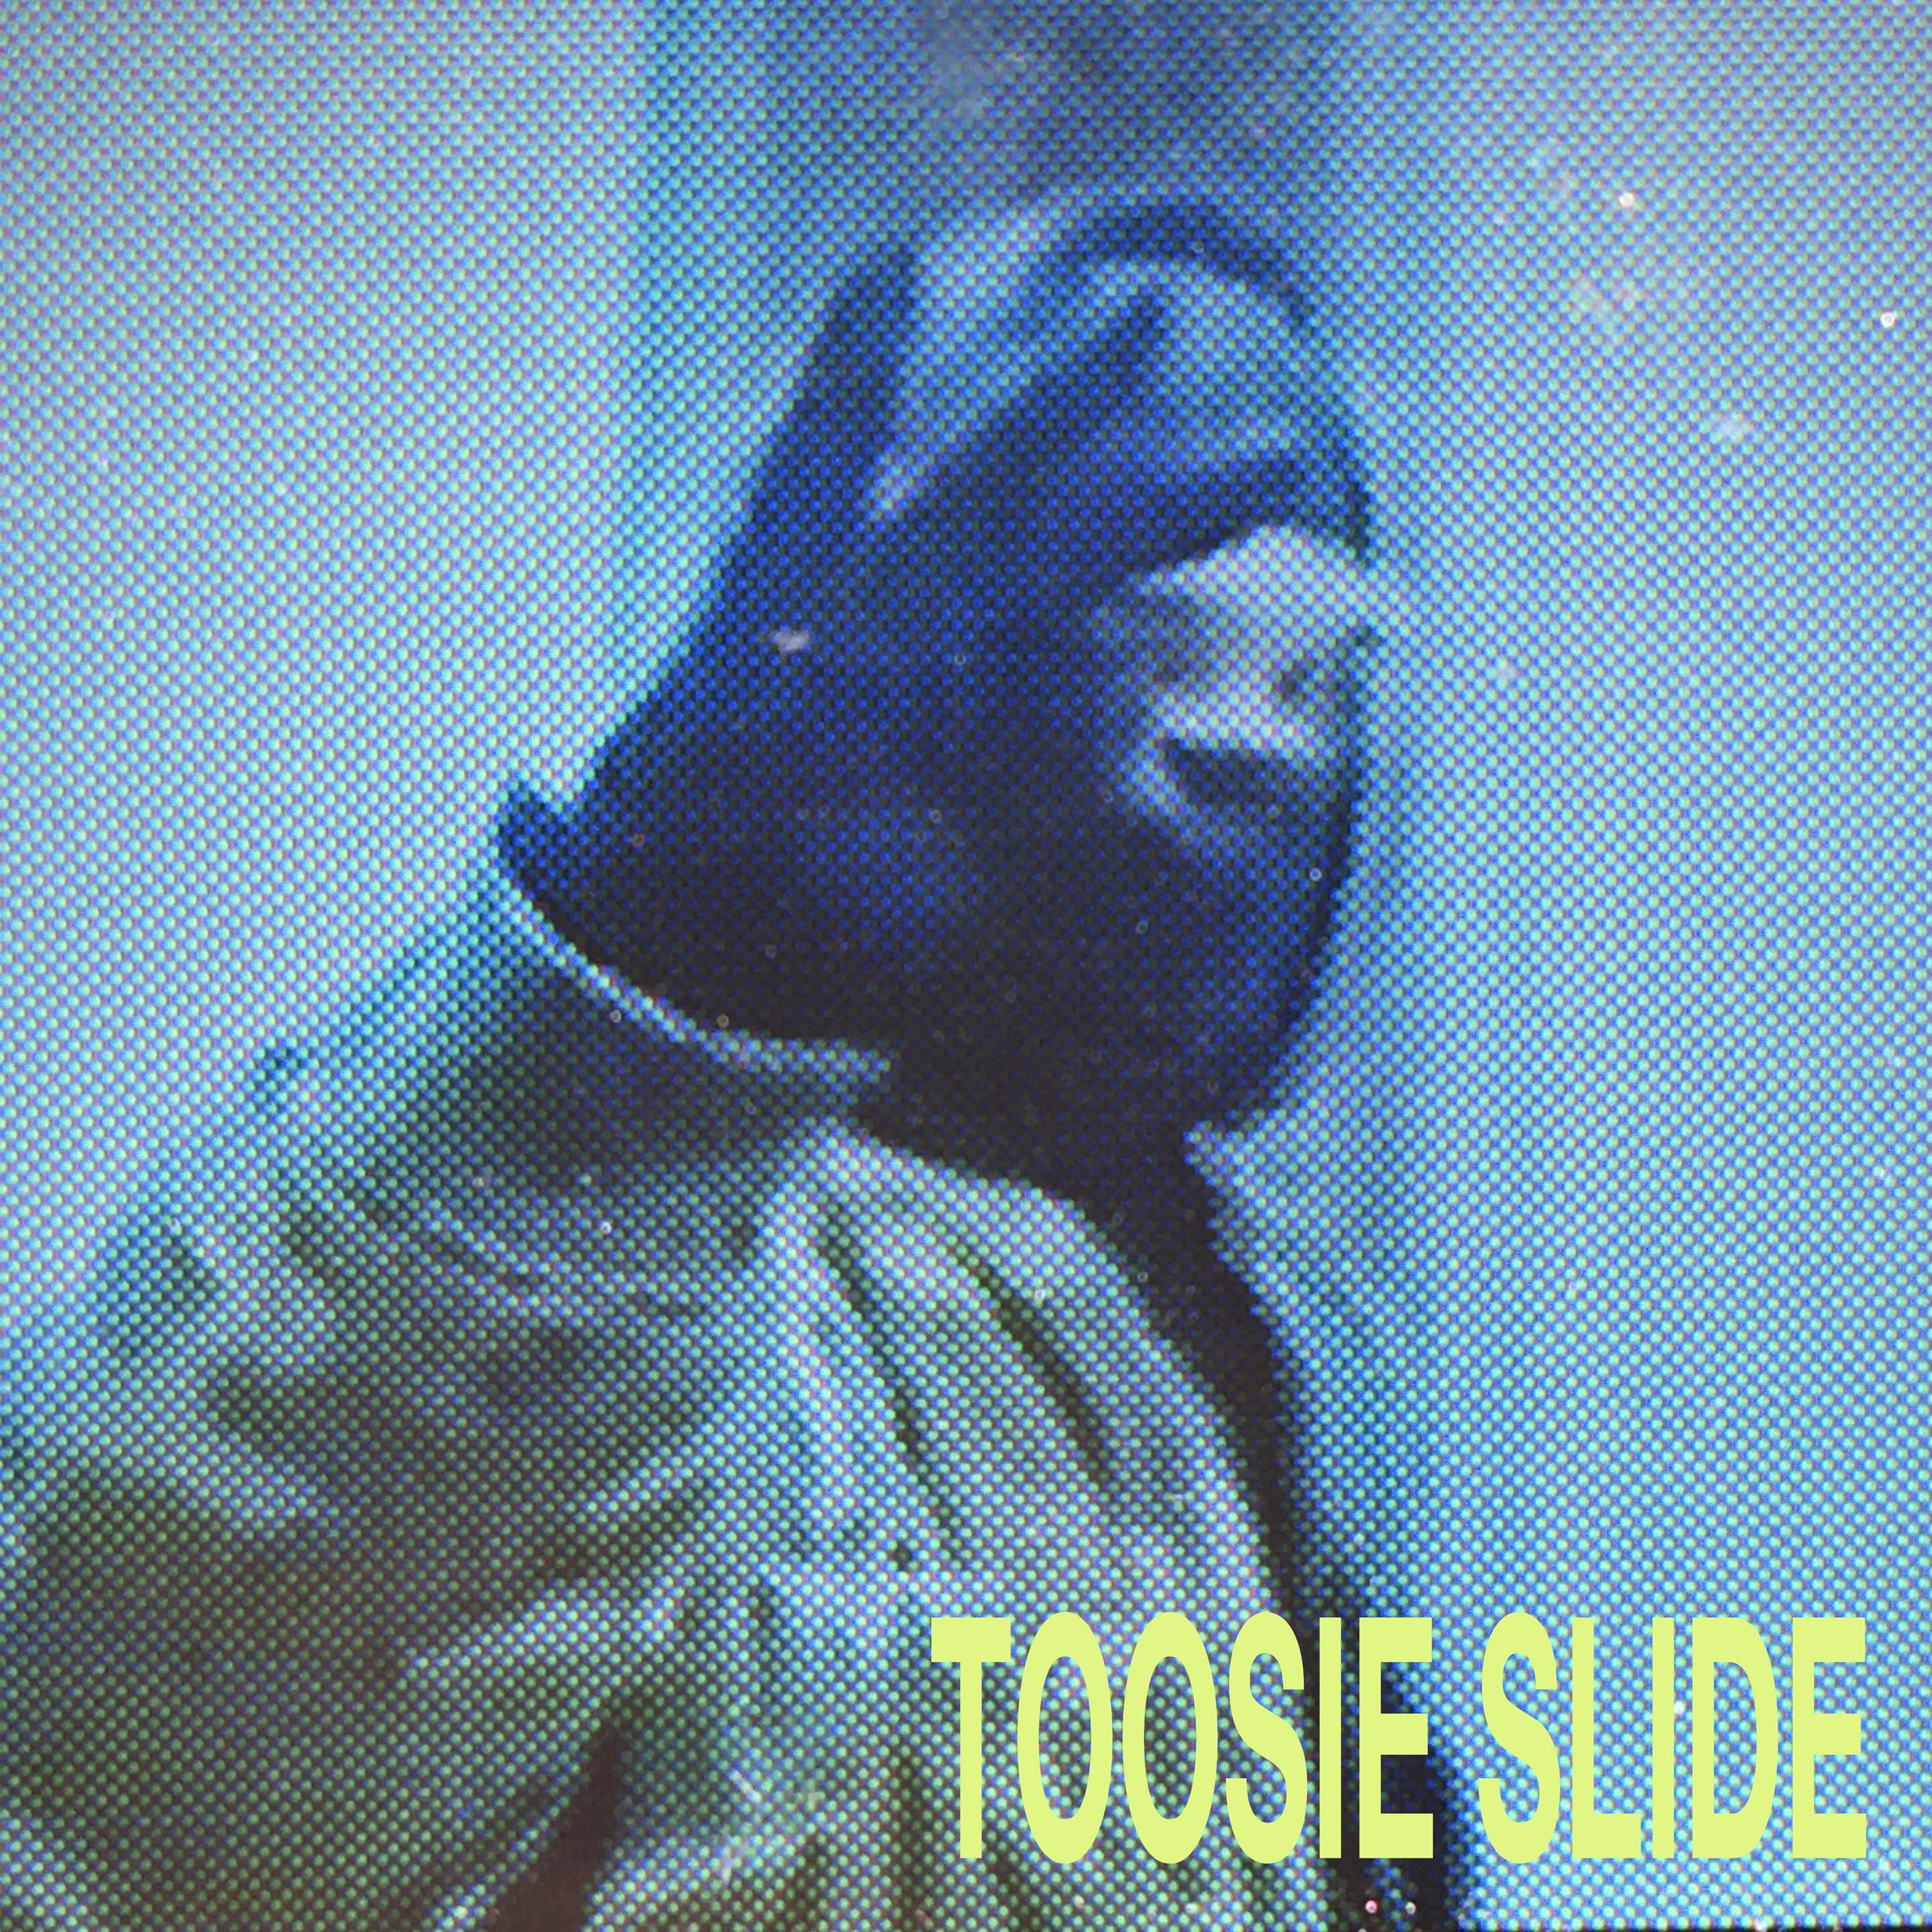 """Drake Offers a House Tour For His """"Toosie Slide"""" Music Video"""